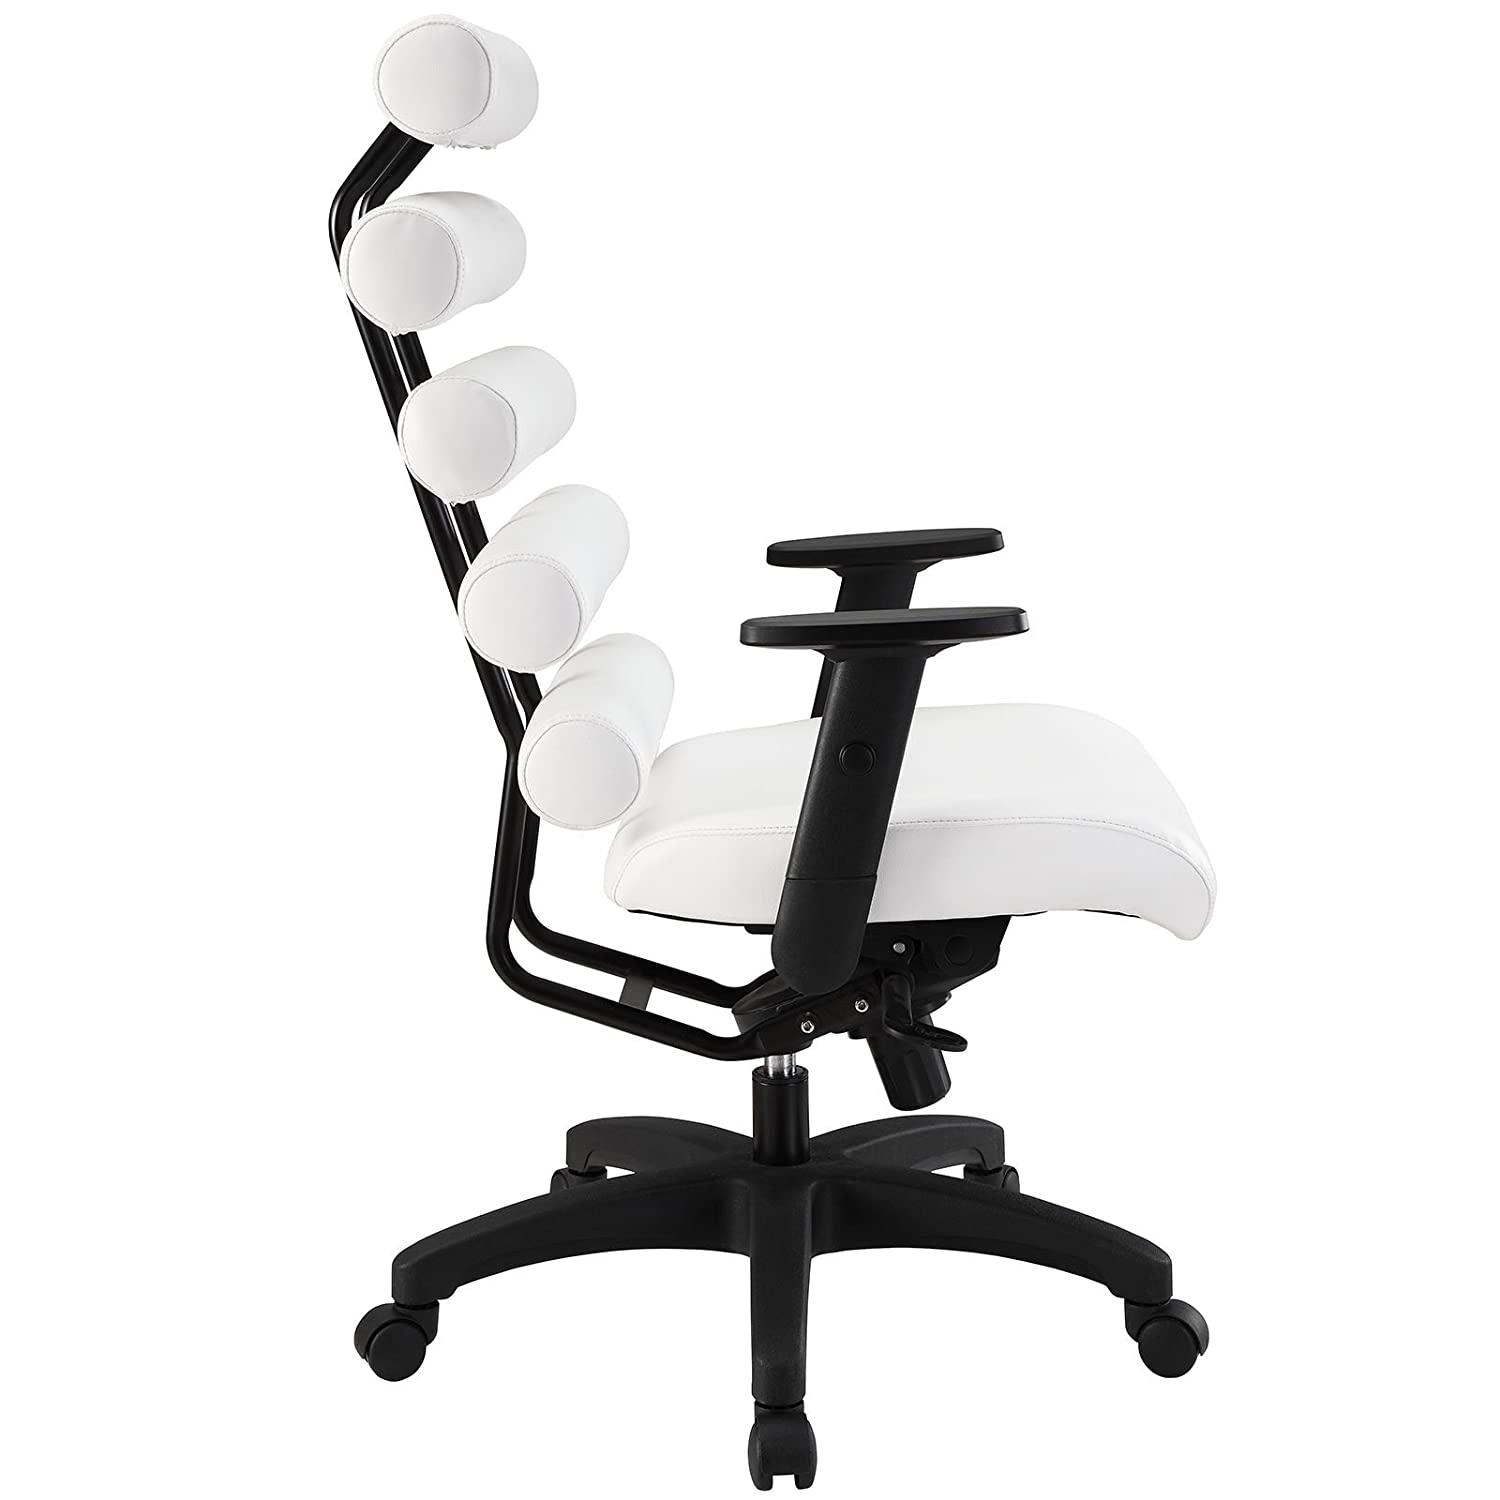 with class down reclining lay leather office desk footrest ergonomic computer chair most chairs